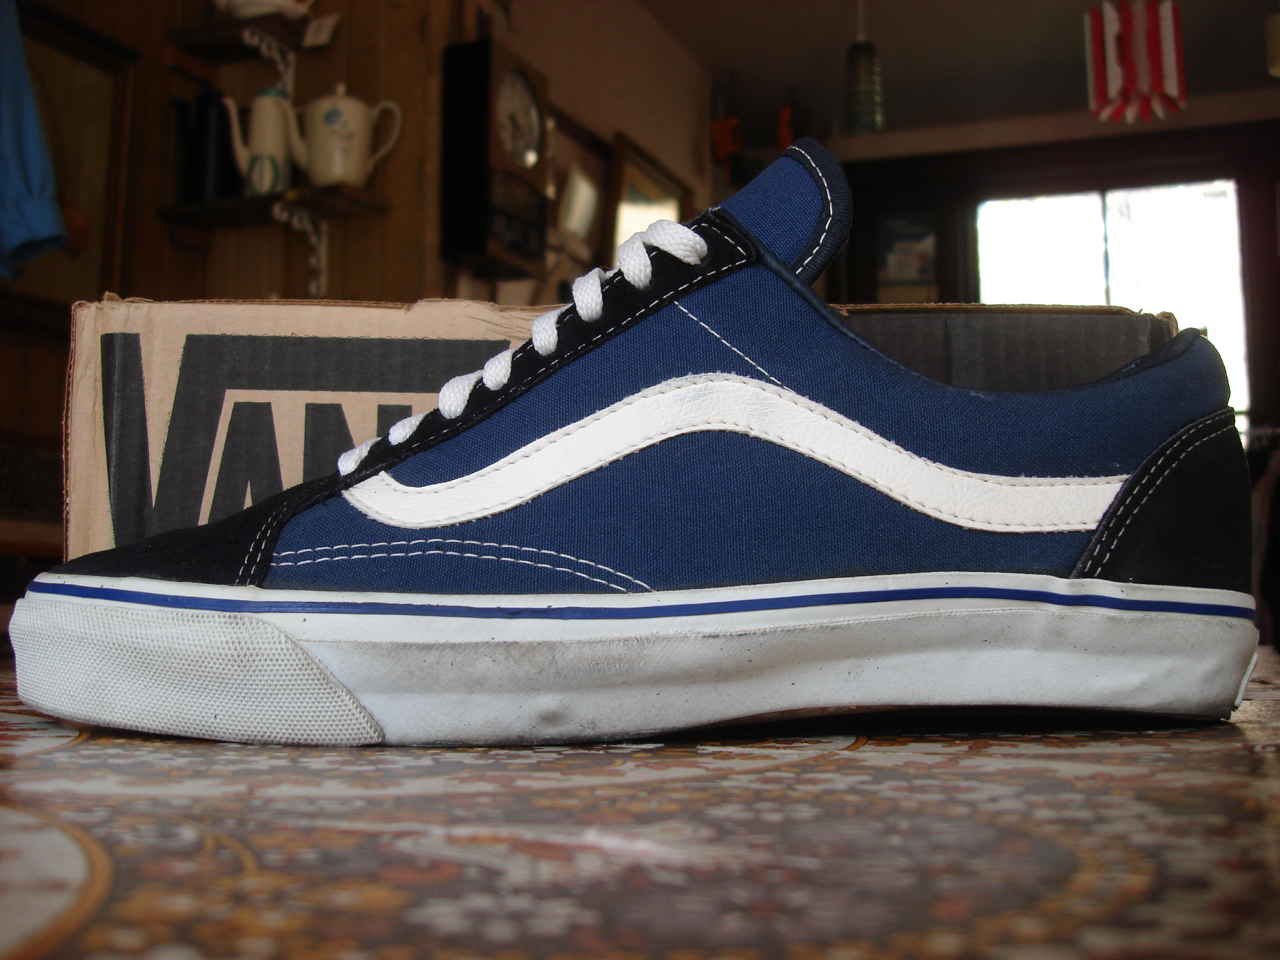 theothersideofthepillow vintage vans navy suede canvas old skool style 36 made in usa school. Black Bedroom Furniture Sets. Home Design Ideas